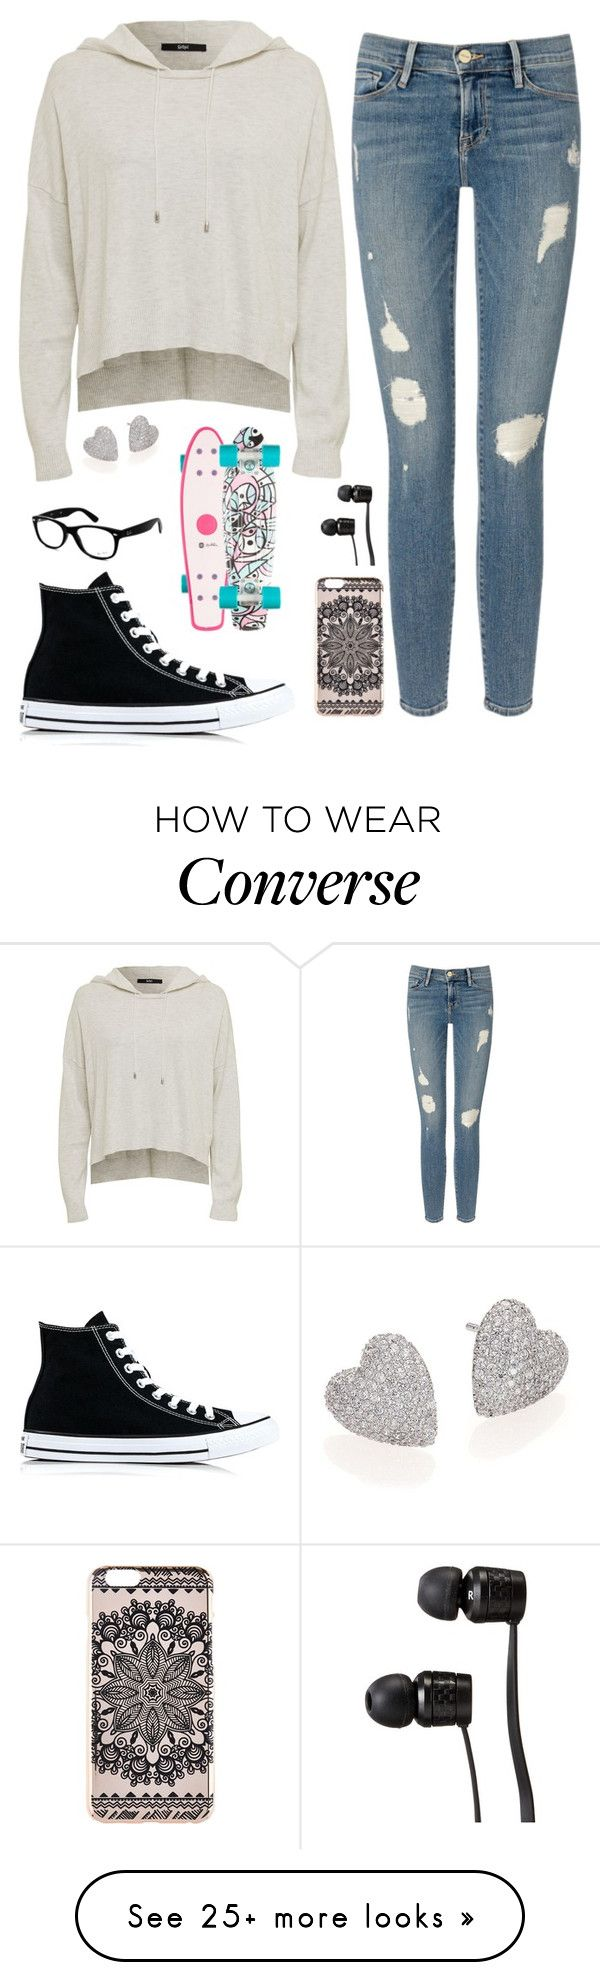 """""""Ride"""" by clouded4ever on Polyvore featuring Frame Denim, Converse, Adriana Orsini, Vans, New Look and Ray-Ban"""